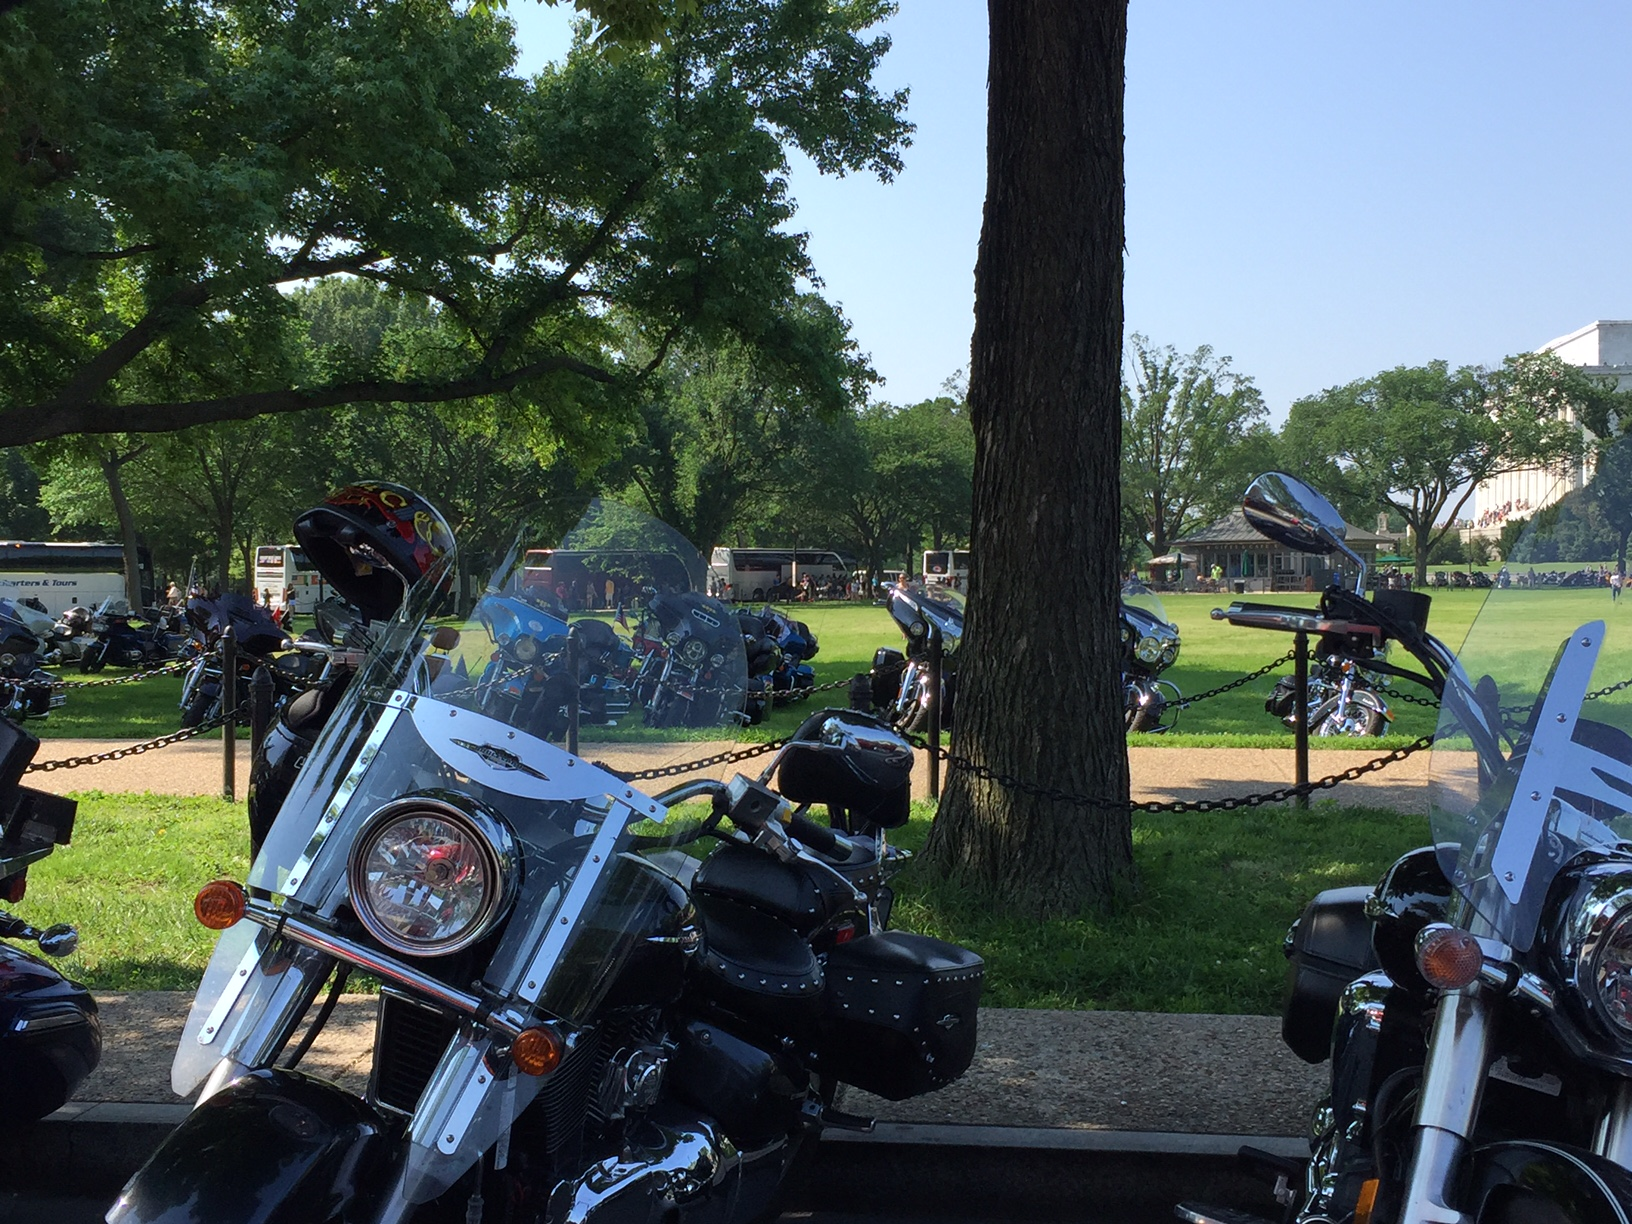 Thousands of bikers are in Washington this weekend for the annual Rolling Thunder Run to honor those who have served in the Armed Forces. (WTOP/Dennis Foley)